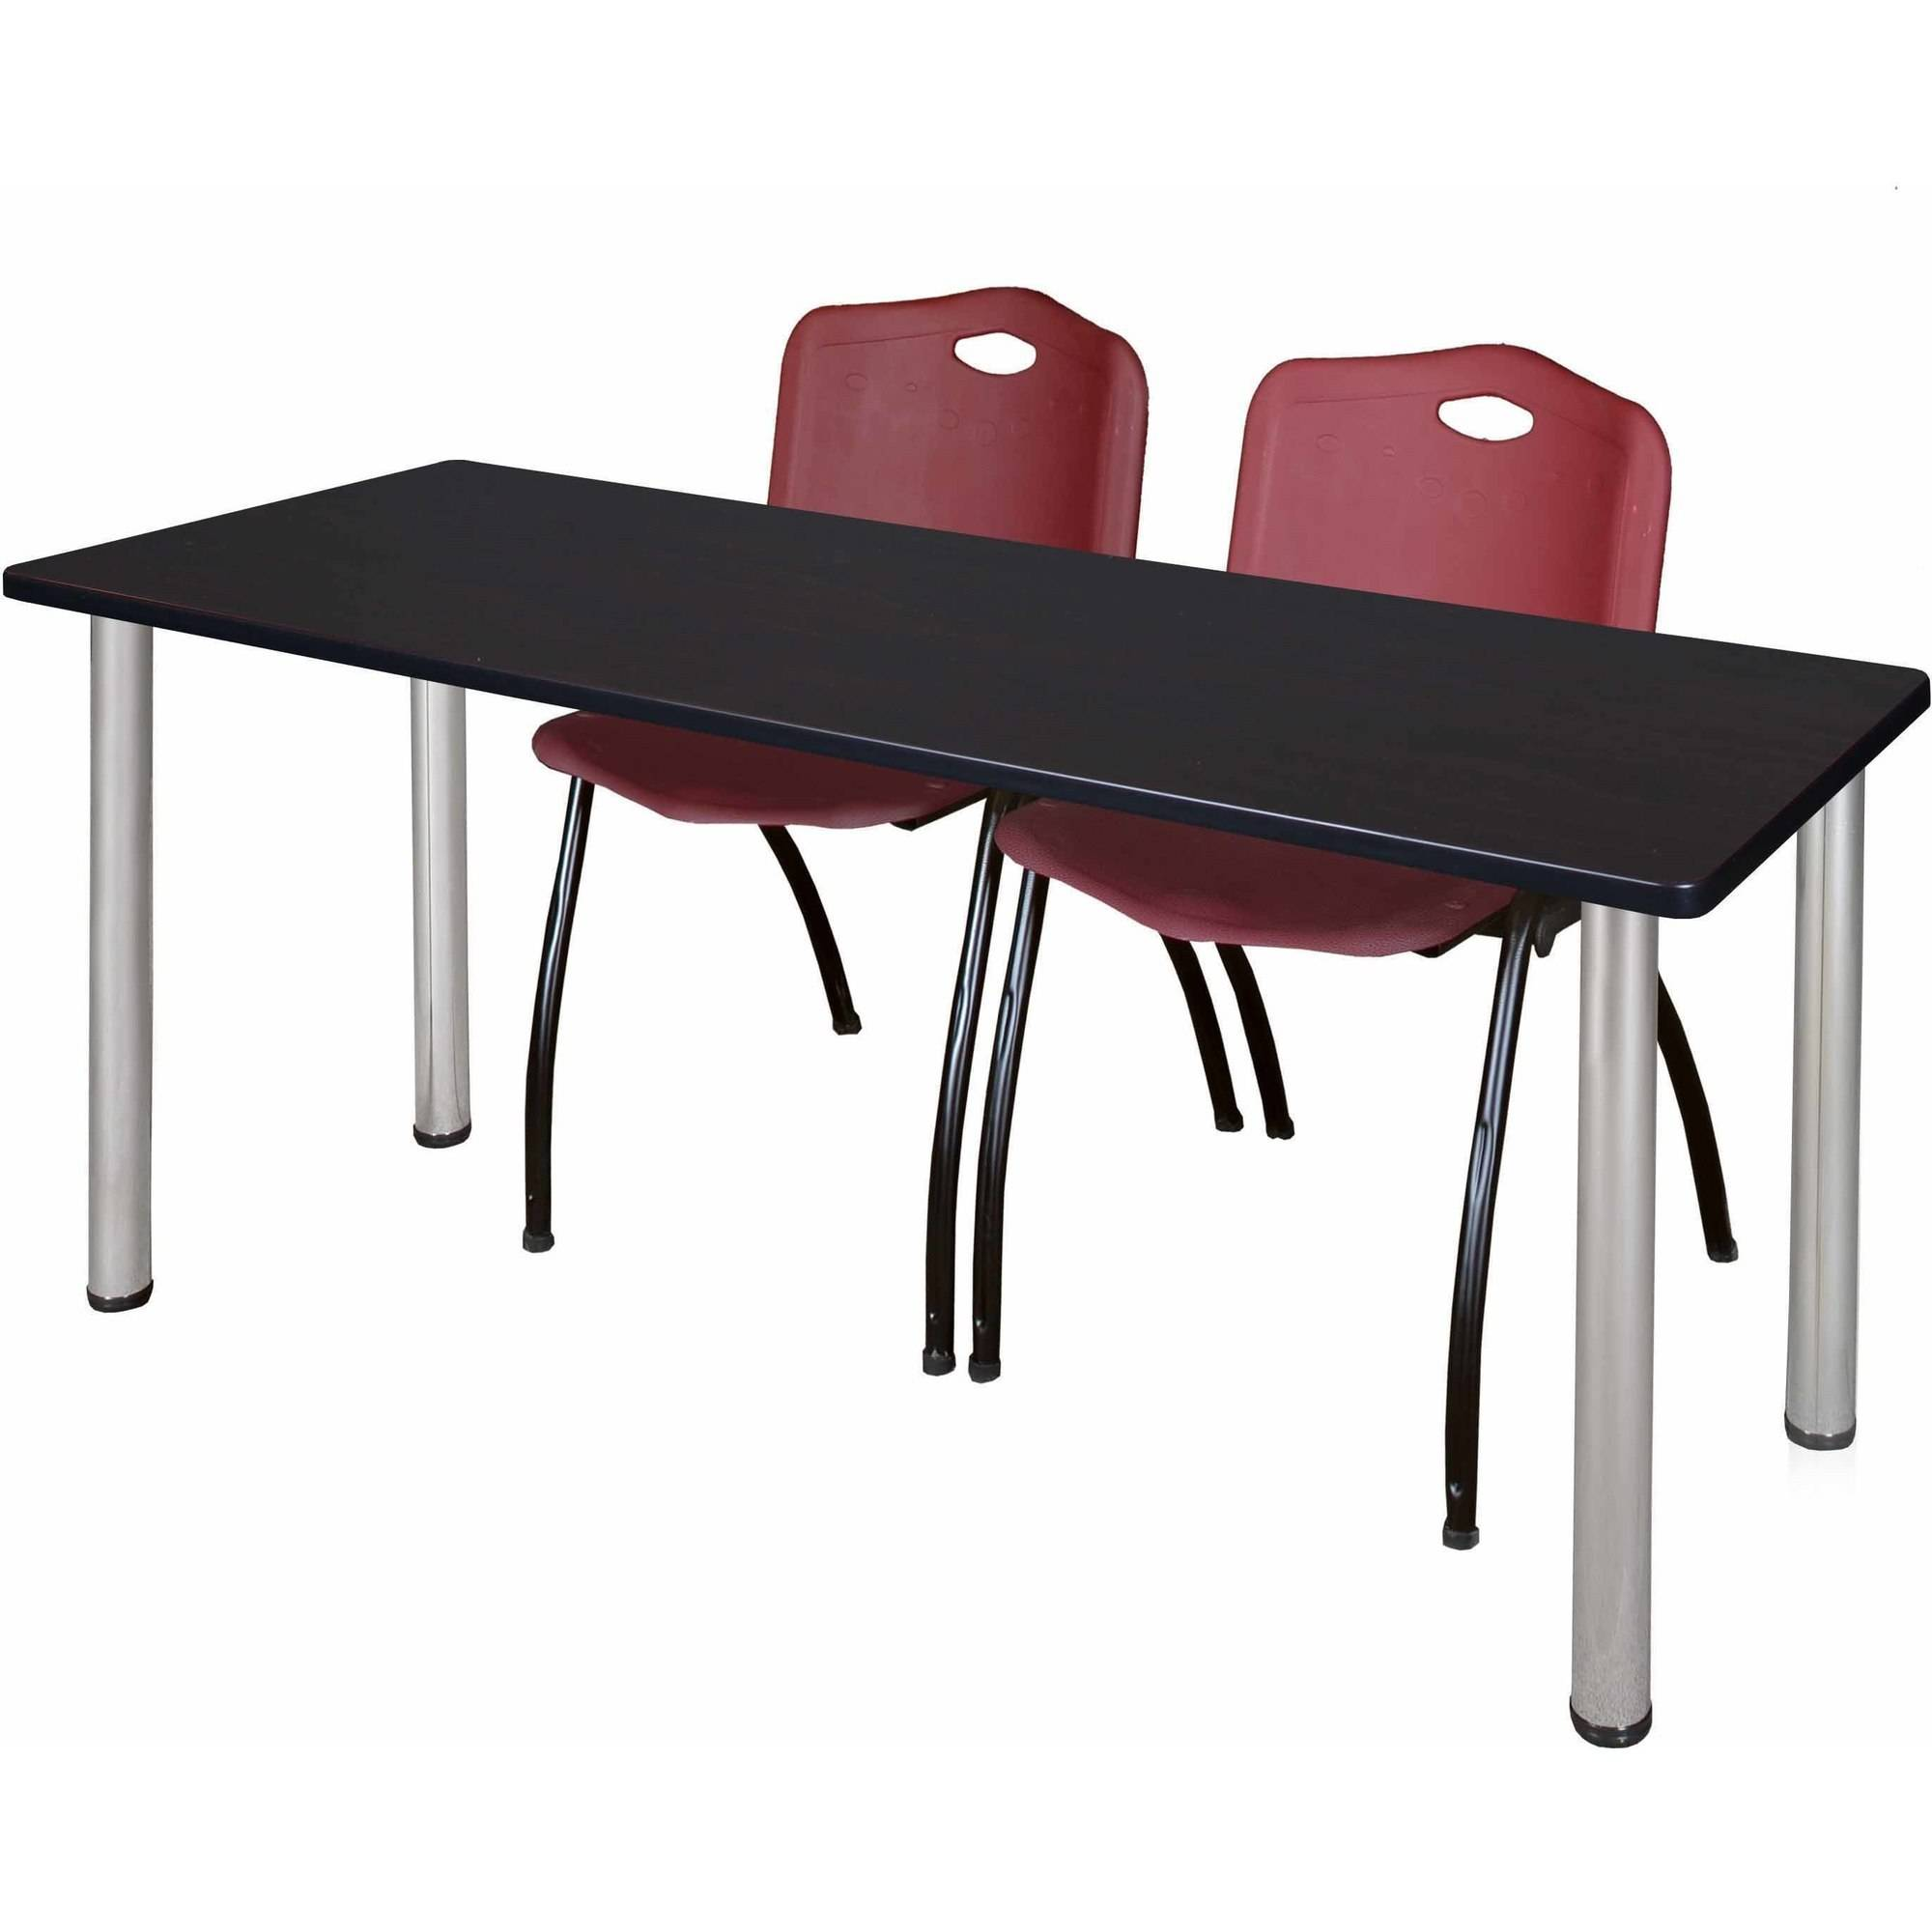 """Regency Kee 60"""" x 24"""" Training Table, Mocha Walnut/Chrome and 2 'M' Stack Chairs, Multiple Colors"""